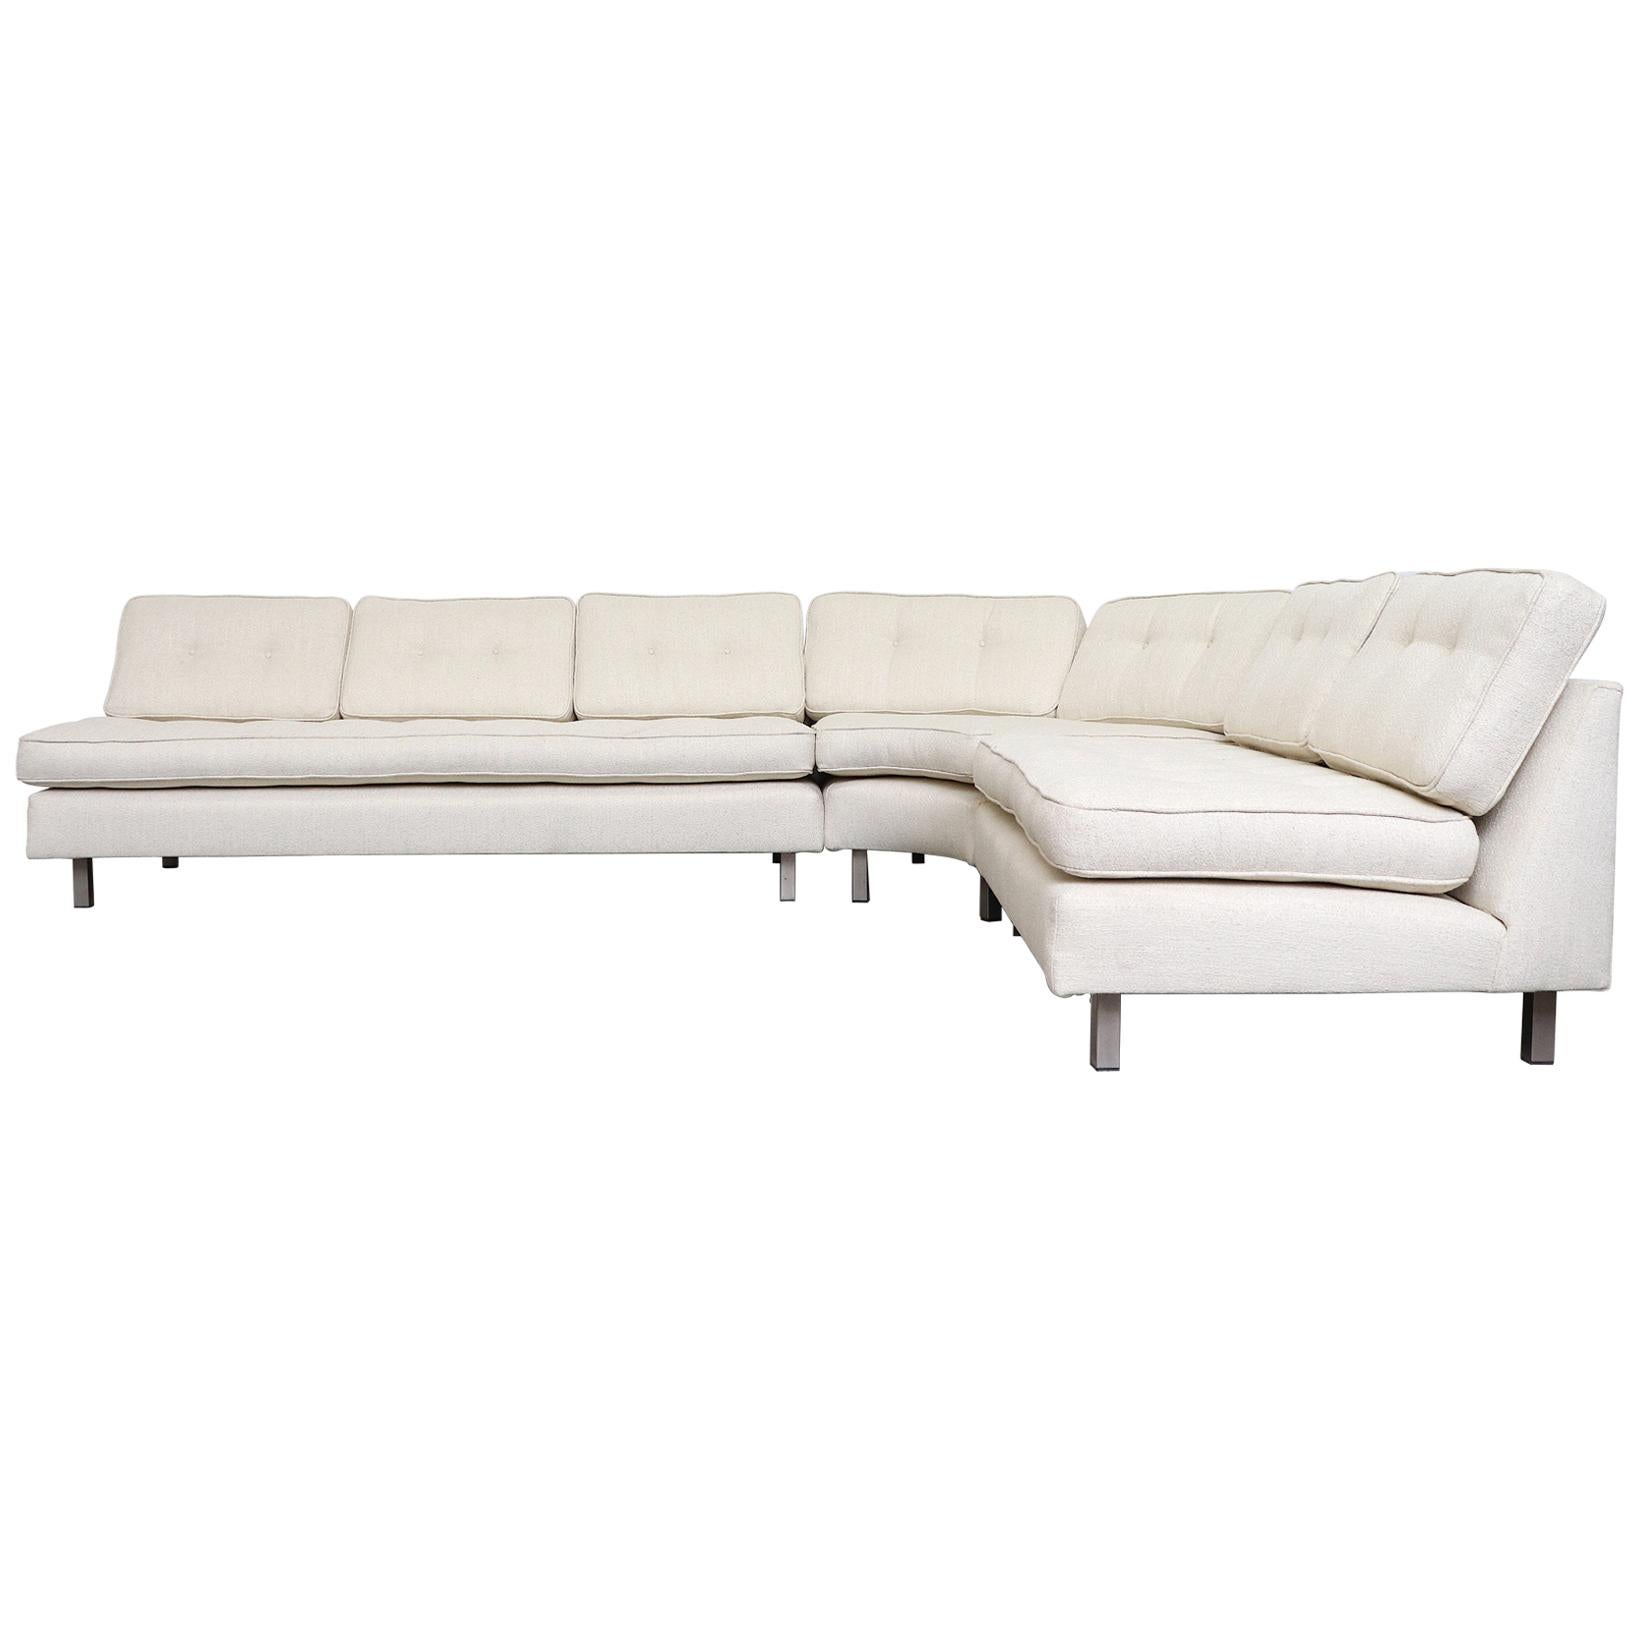 Artifort 3-Piece Sectional Sofa by Geoffrey Harcourt